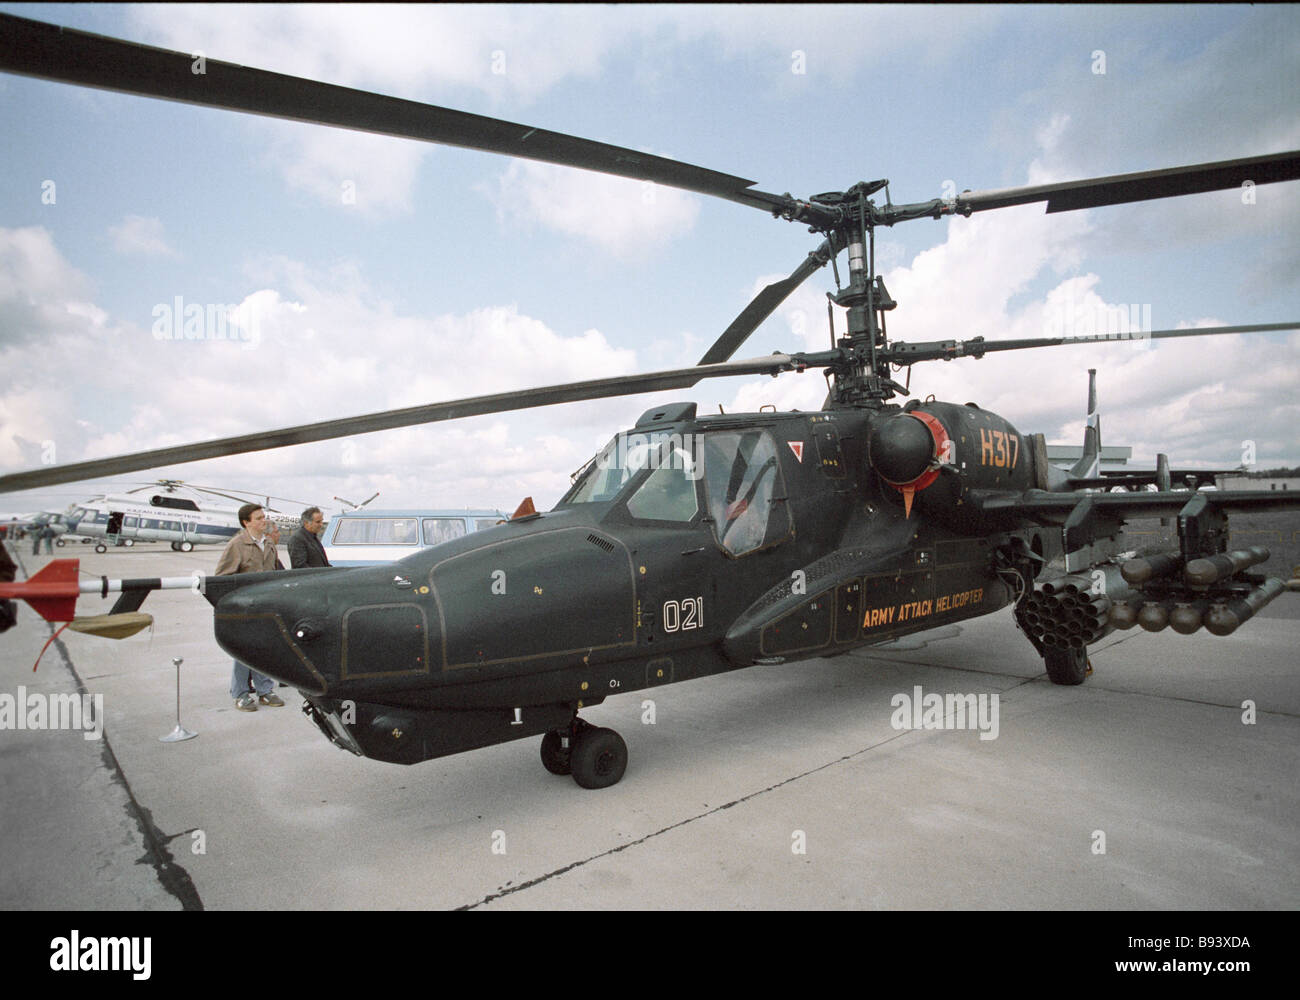 The Ka 40 one seater army combat helicopter Black Shark on an airfield - Stock Image